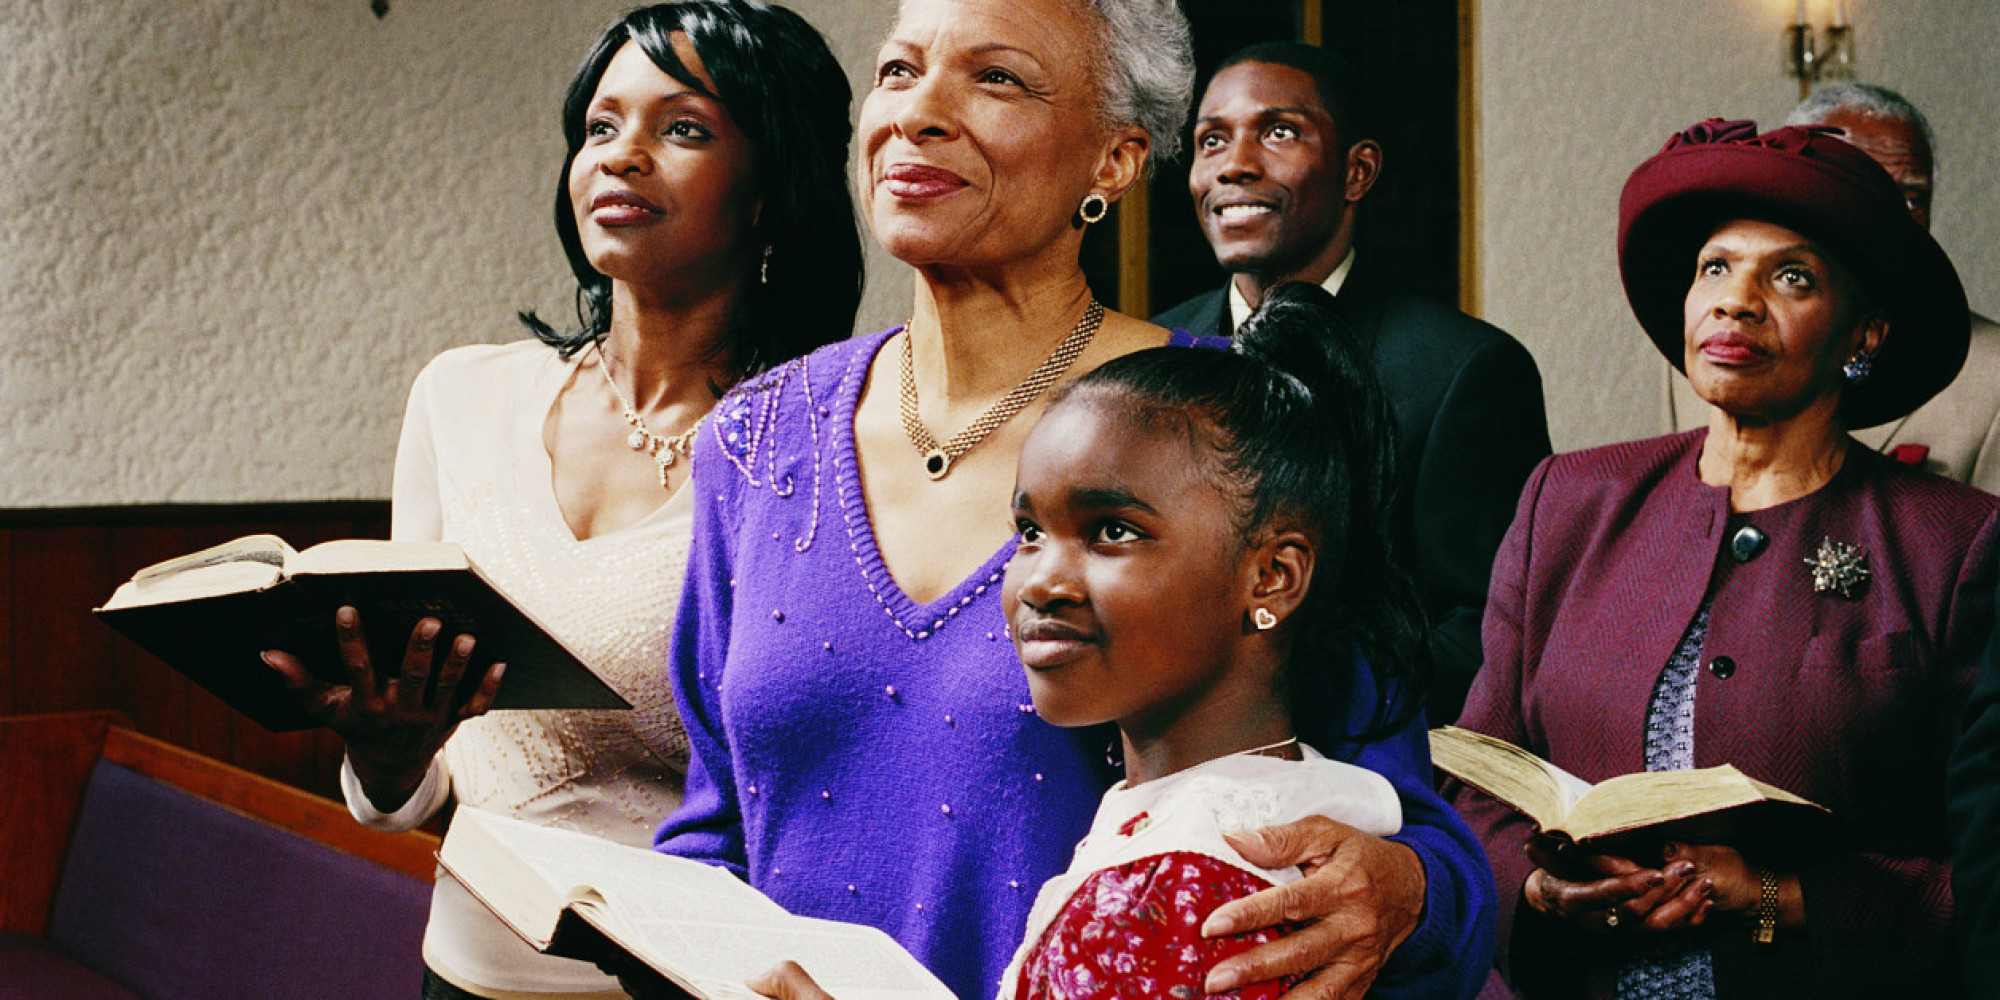 Family Standing in Church Pews Holding Bibles and Listening to a Service